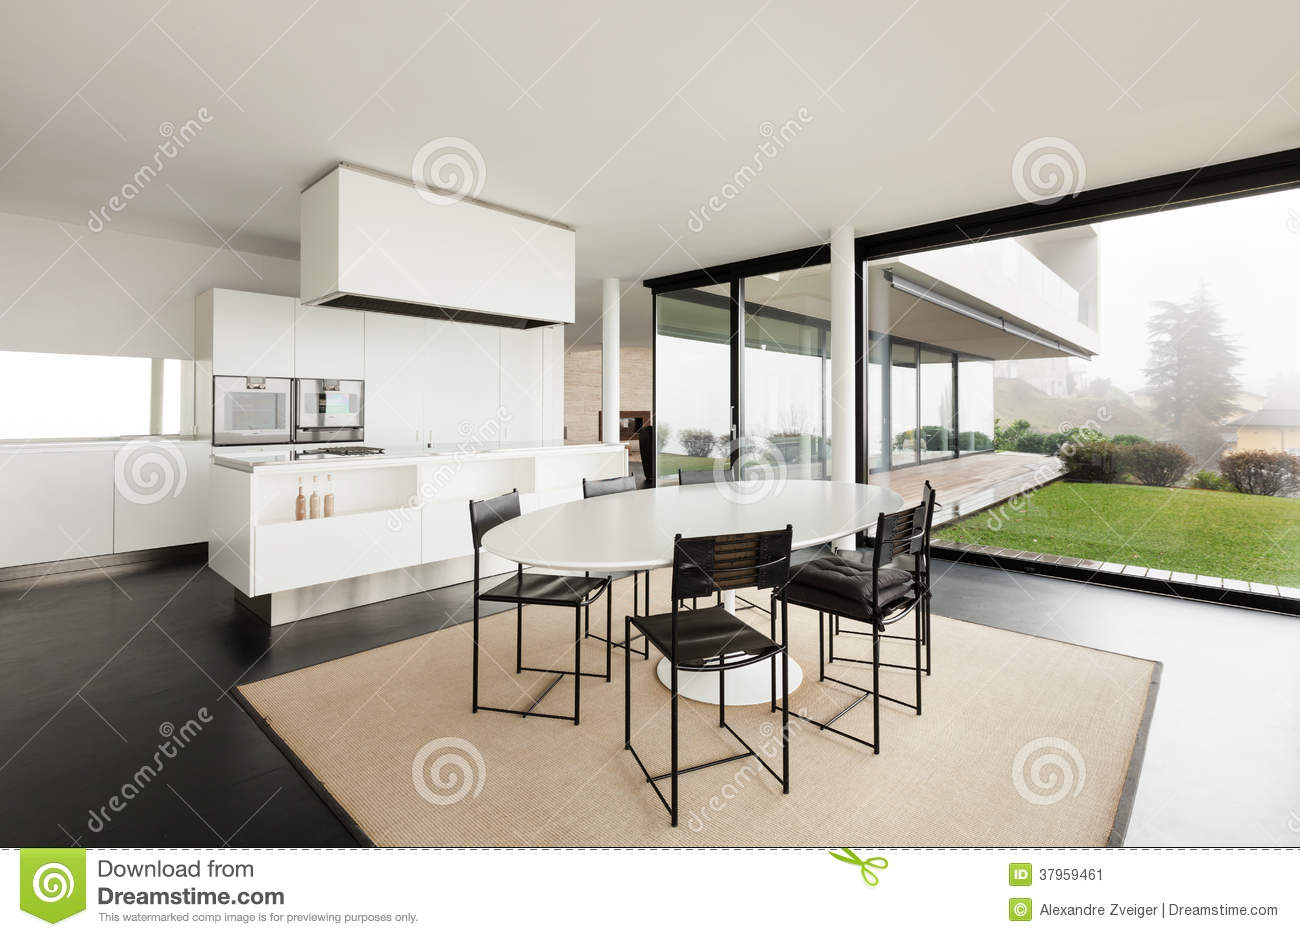 Architecture int rieur d 39 une villa moderne image stock for Architecture d interieur